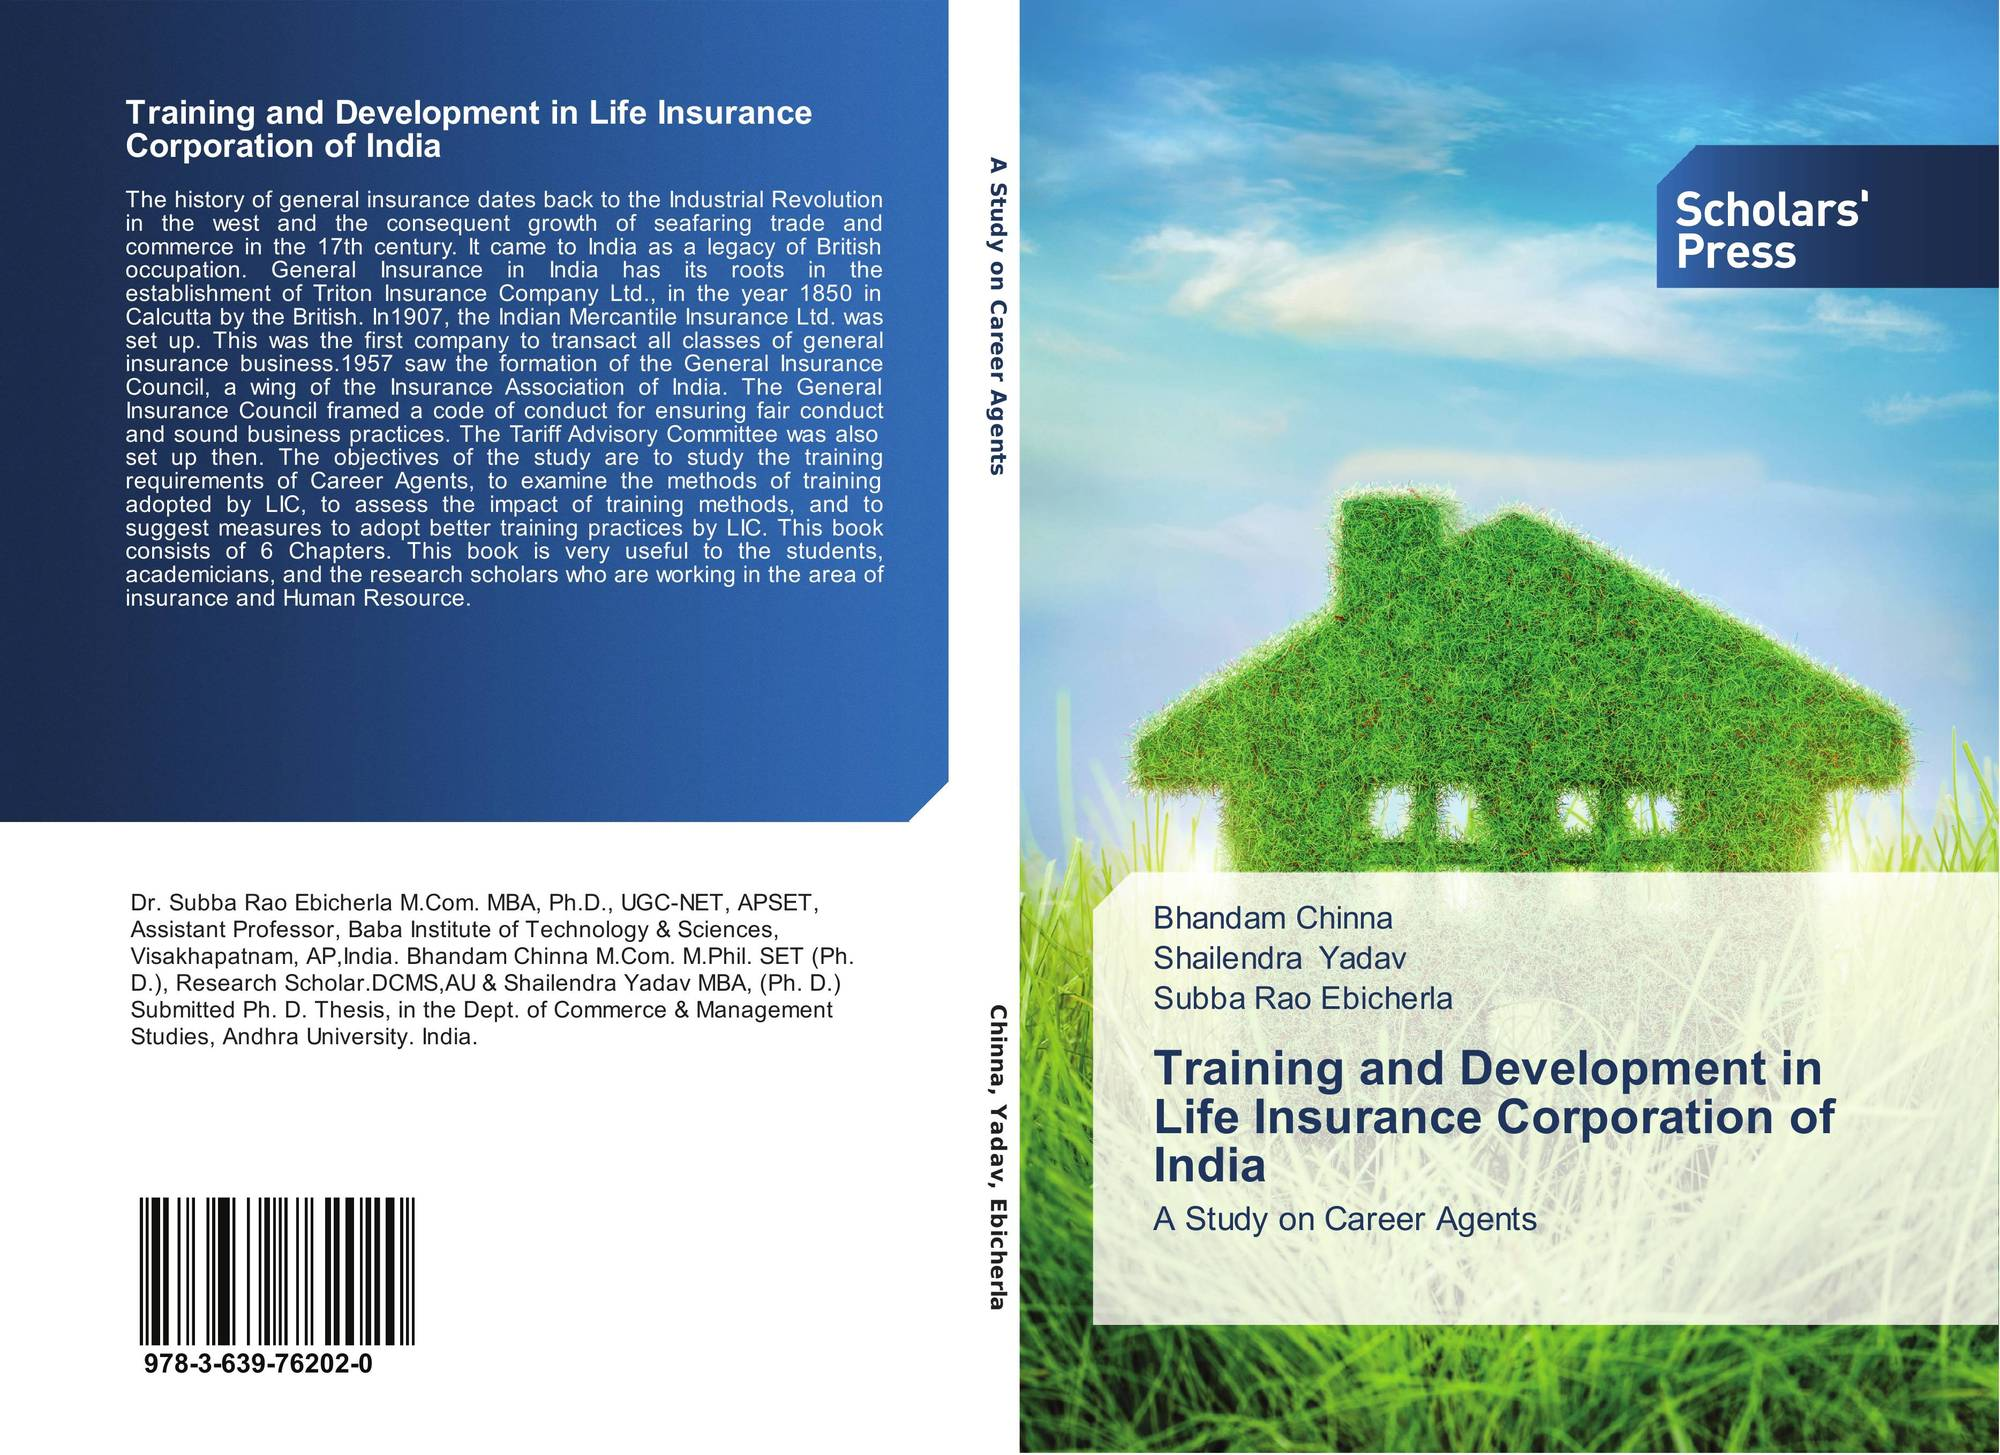 evaluation of training and development in life insurance corporation of india Non-life insurance company-wise number of  economic evaluation of kisan credit card scheme for sugarcane crop  women entrepreneurship development in india.